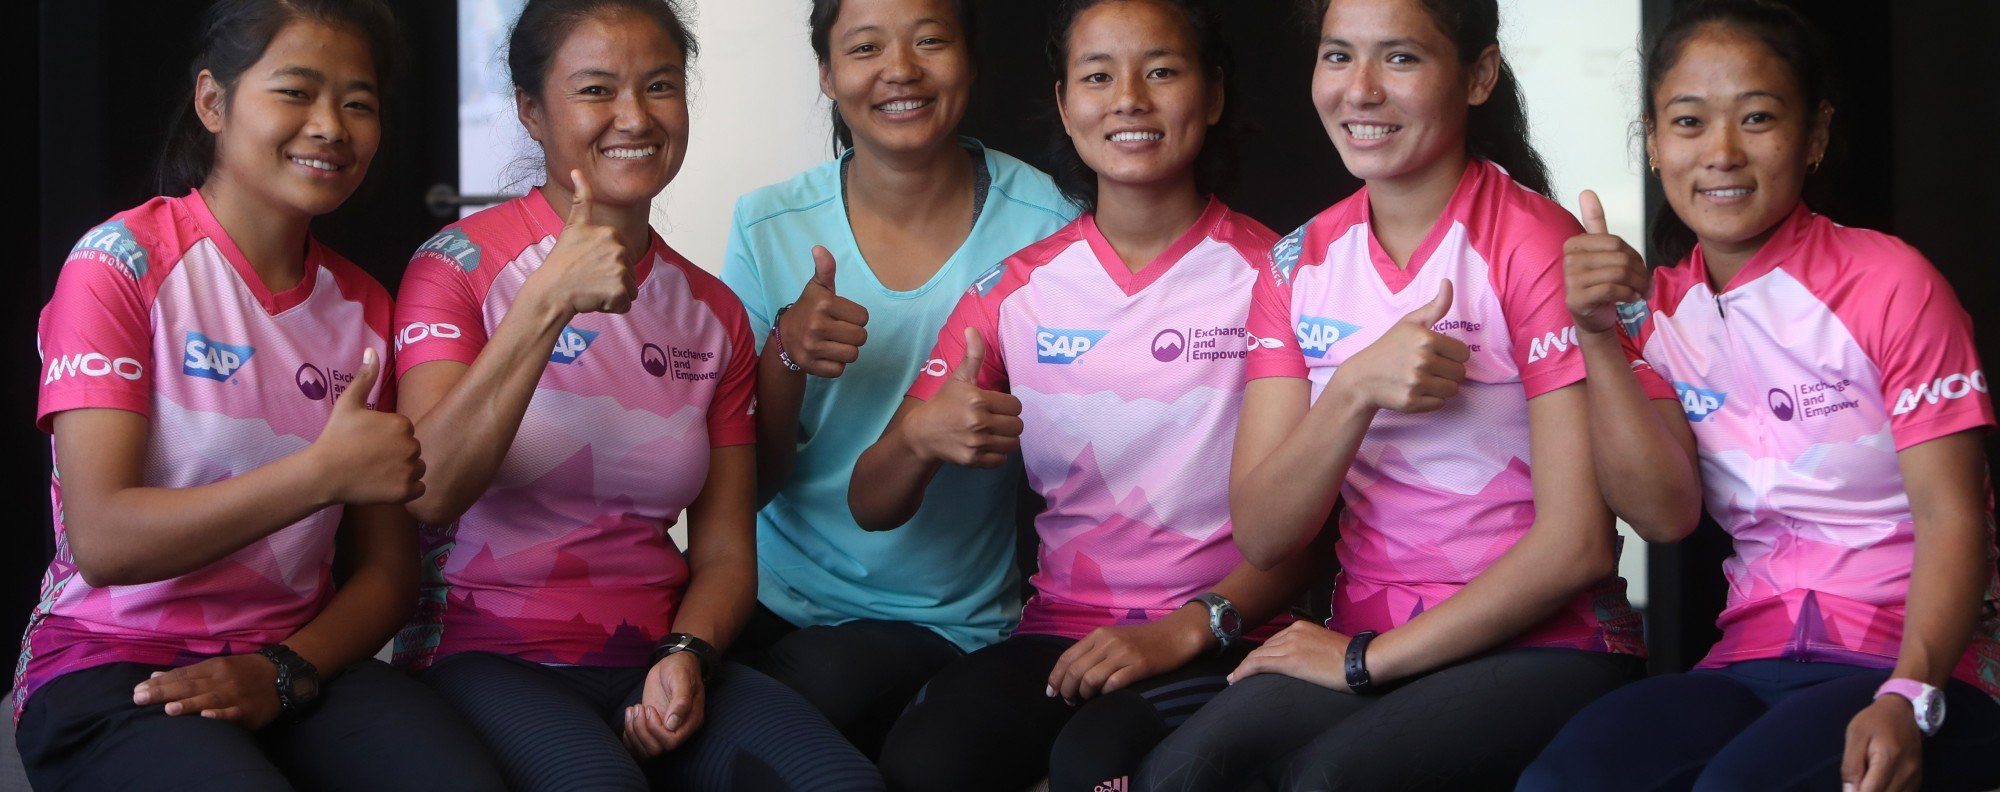 The first team of Nepalese women to run the Oxfam Trailwalker (from left): Humi Budha Magar, Chhechi Sherpa Rai, Mira Rai, Rashila Tamang, Sunmaya Budha and Chhoki Sherpa. Photo: Winson Wong